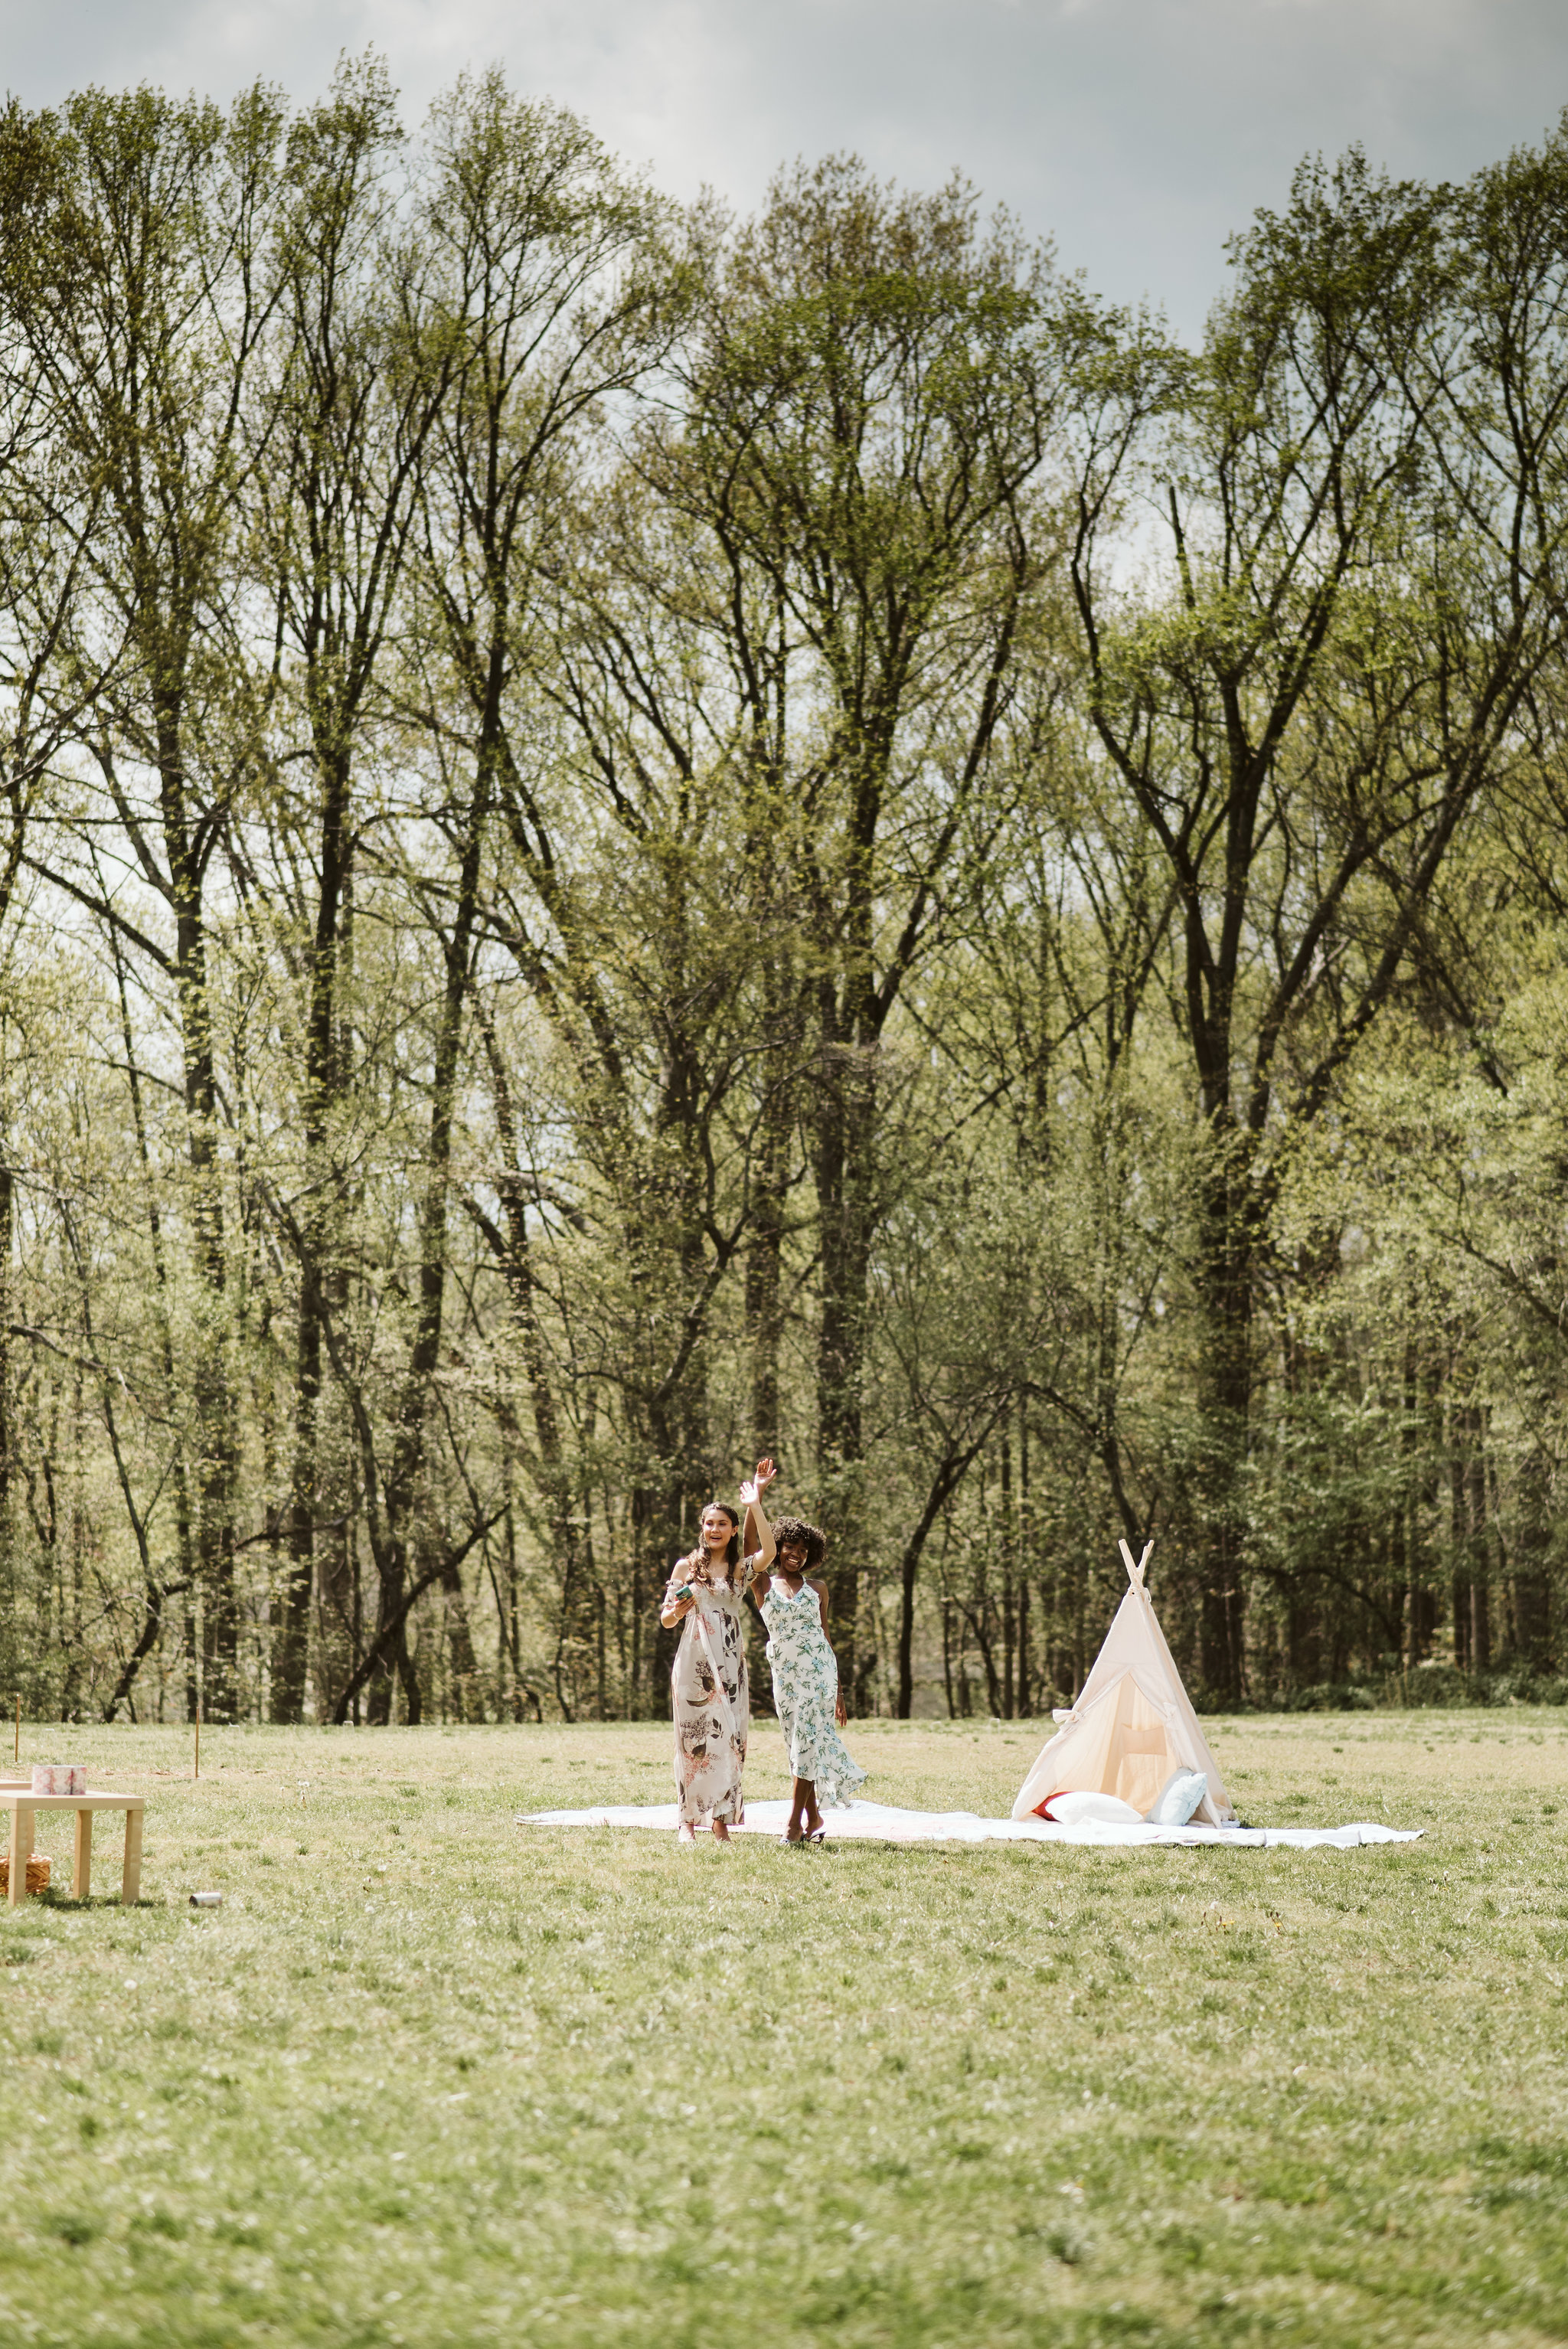 Spring Outdoor Wedding, Park, Baltimore Wedding Photographer, DIY, Classic, Upcycled, Garden Party, Romantic, Friends Dancing Outside, Hangout Area in the Grass